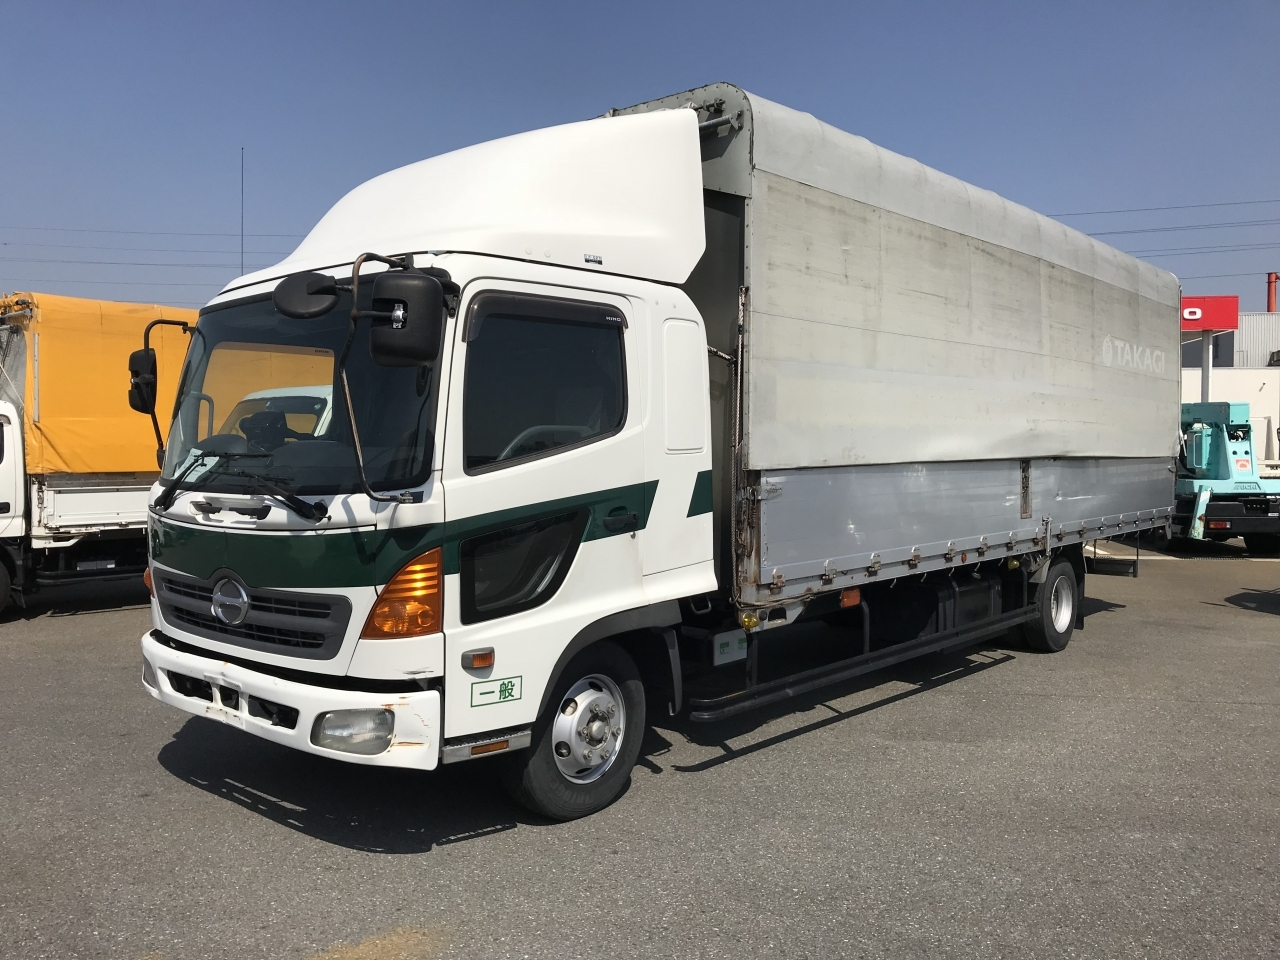 Buy used HINO RANGER at Japanese auctions